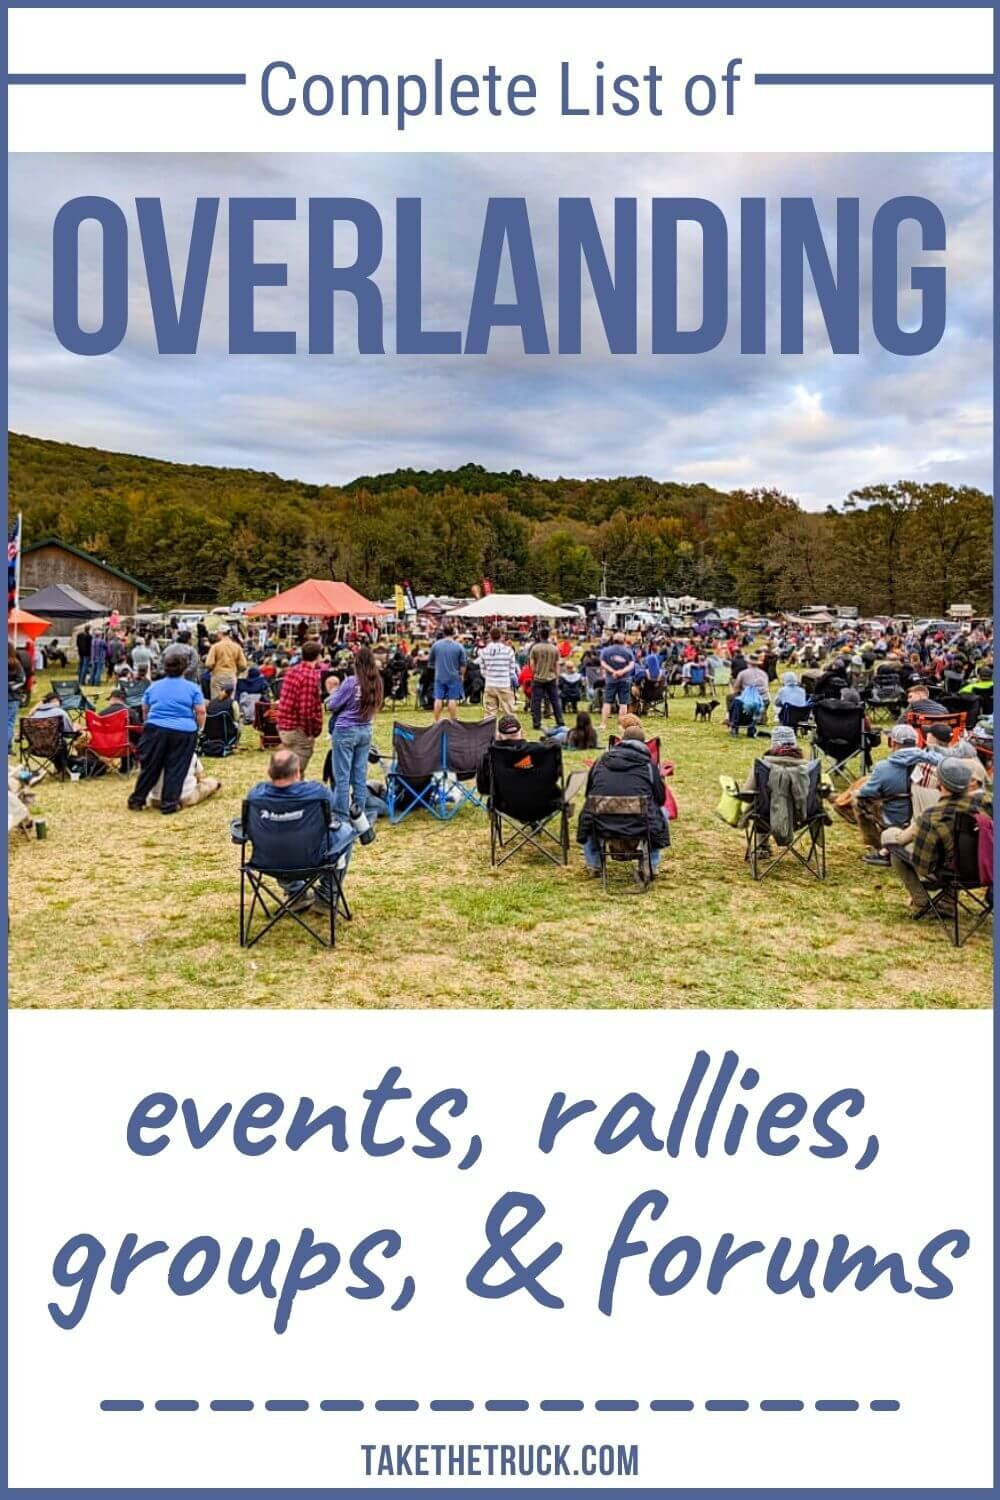 Are you an overlanding beginner wondering how to start overlanding? Use this master list to find an overland group, overland event, forum, overland rally, or overland expo all about overland travel!